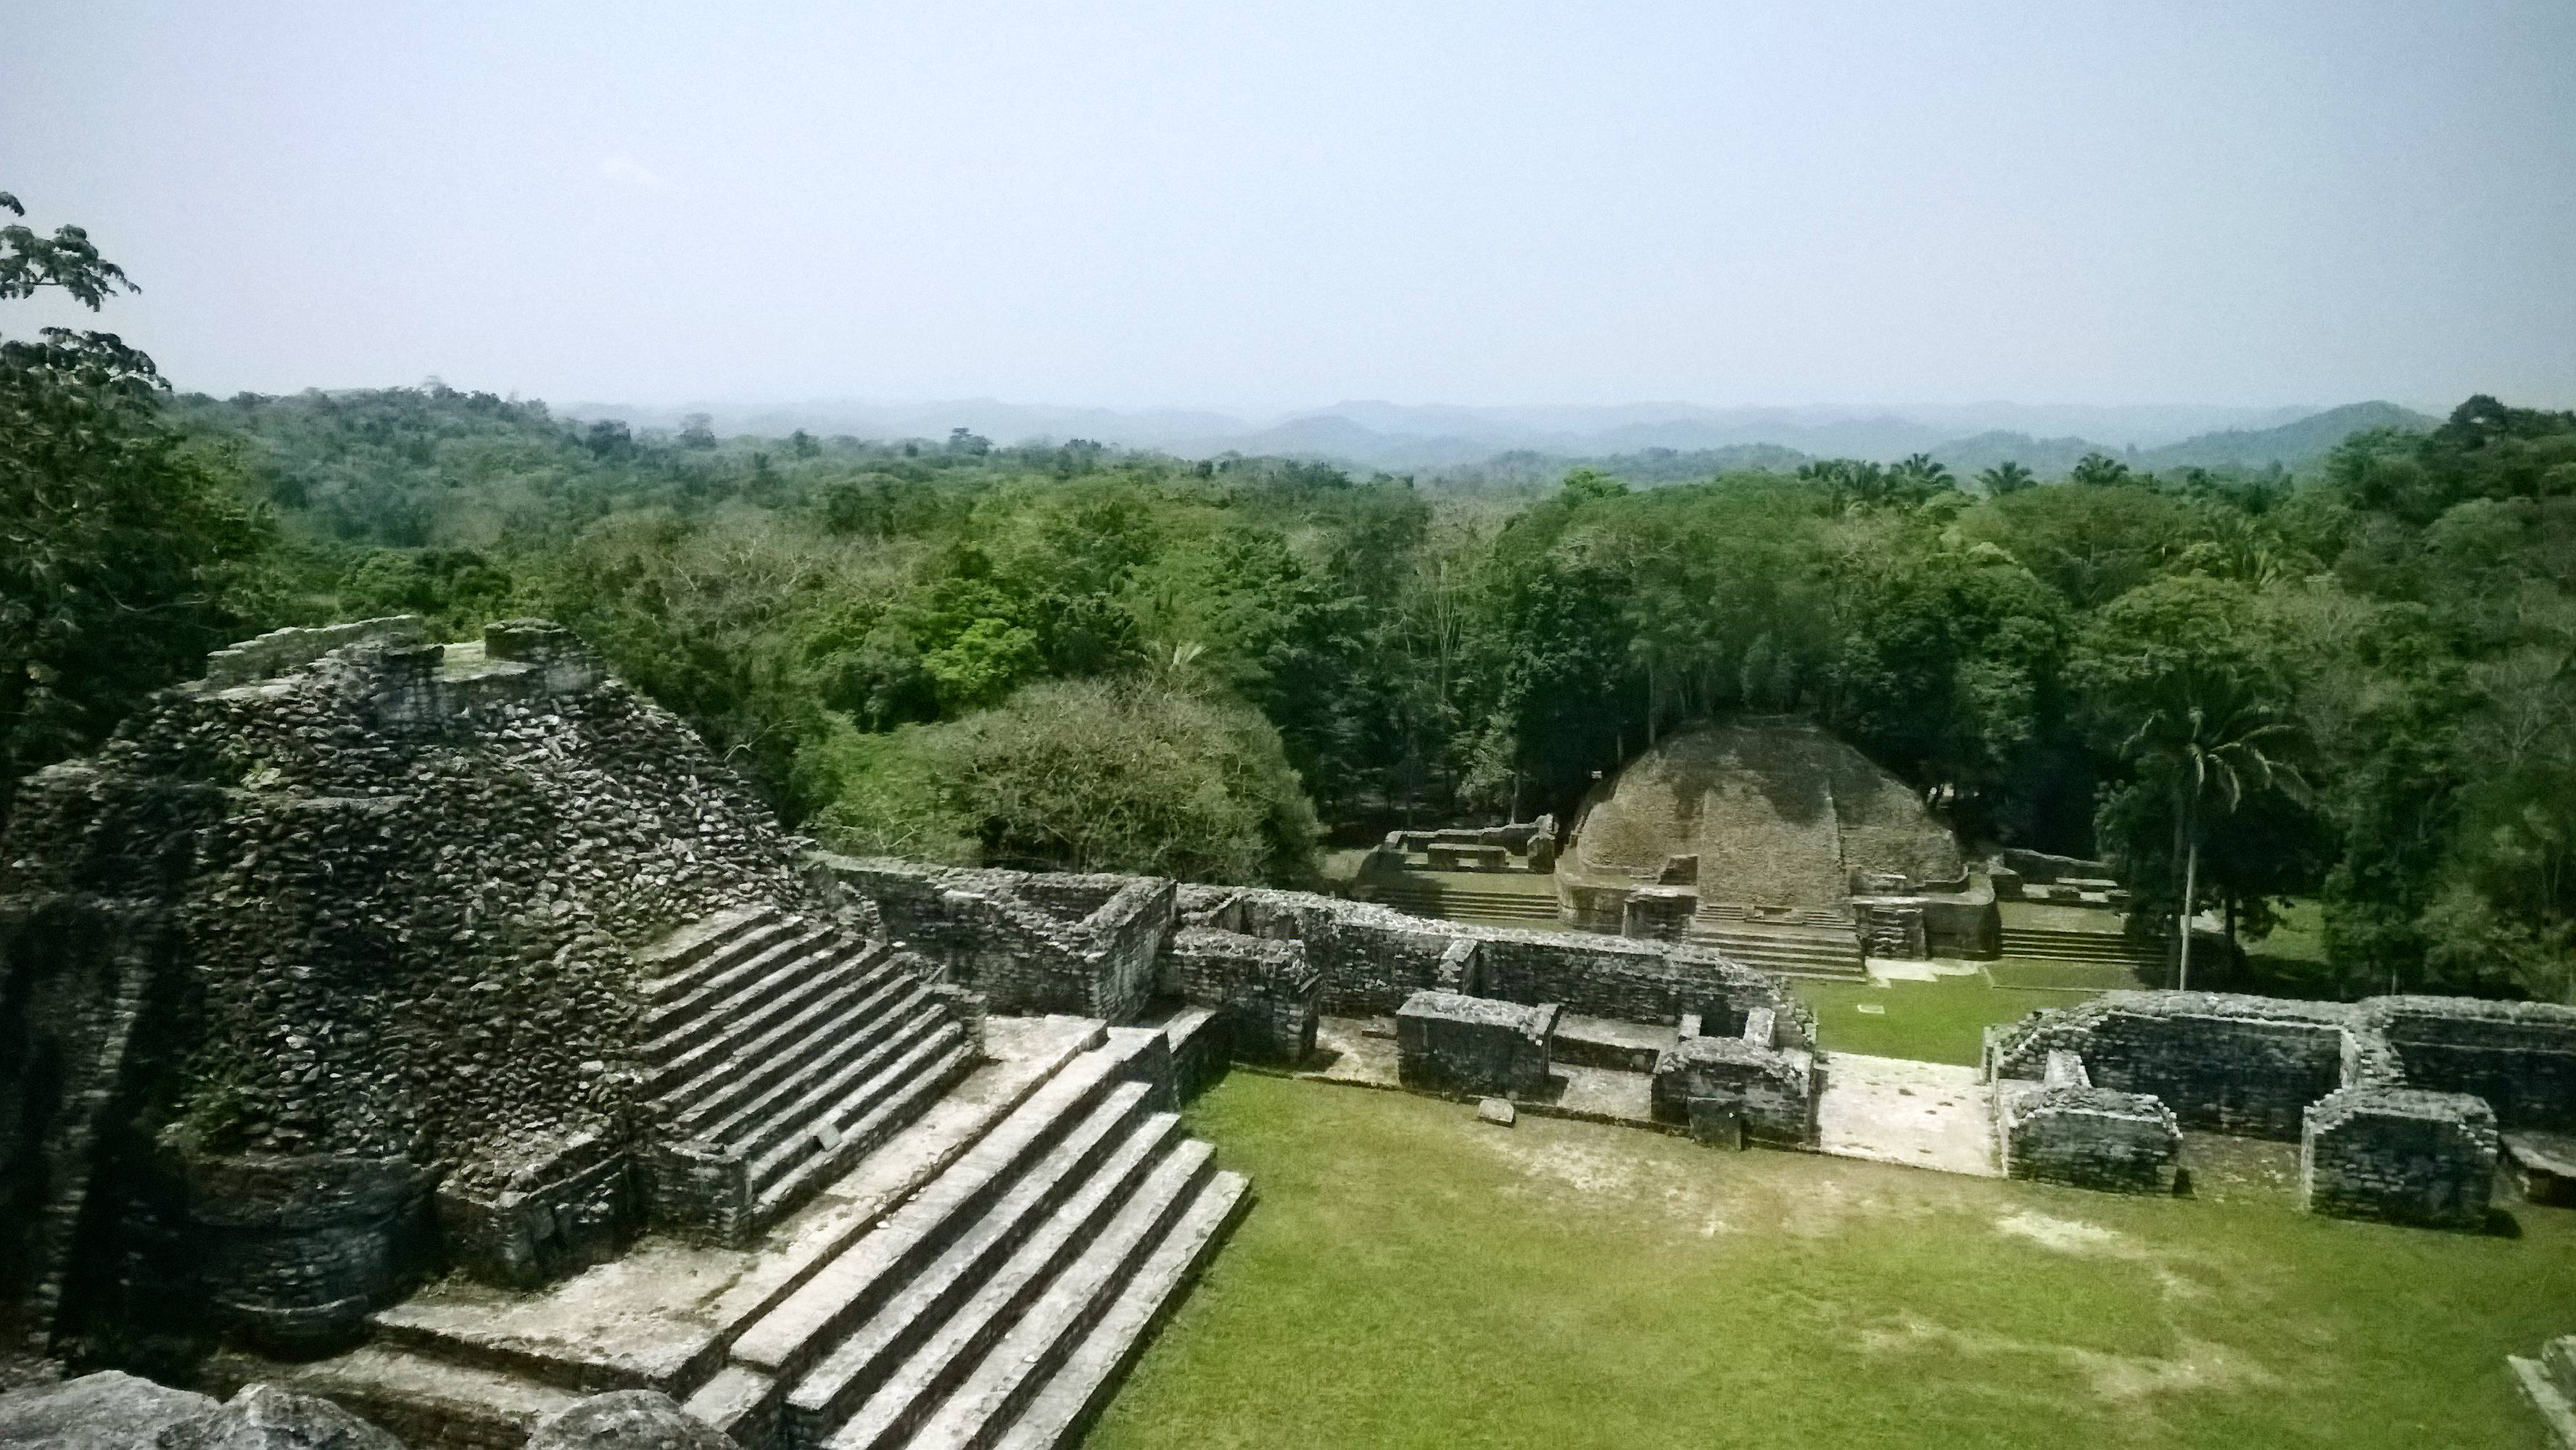 Once home to 150,000 inhabitants, what's left of the towering Maya city now known as Caracol is mostly hidden in Belize's jungle.